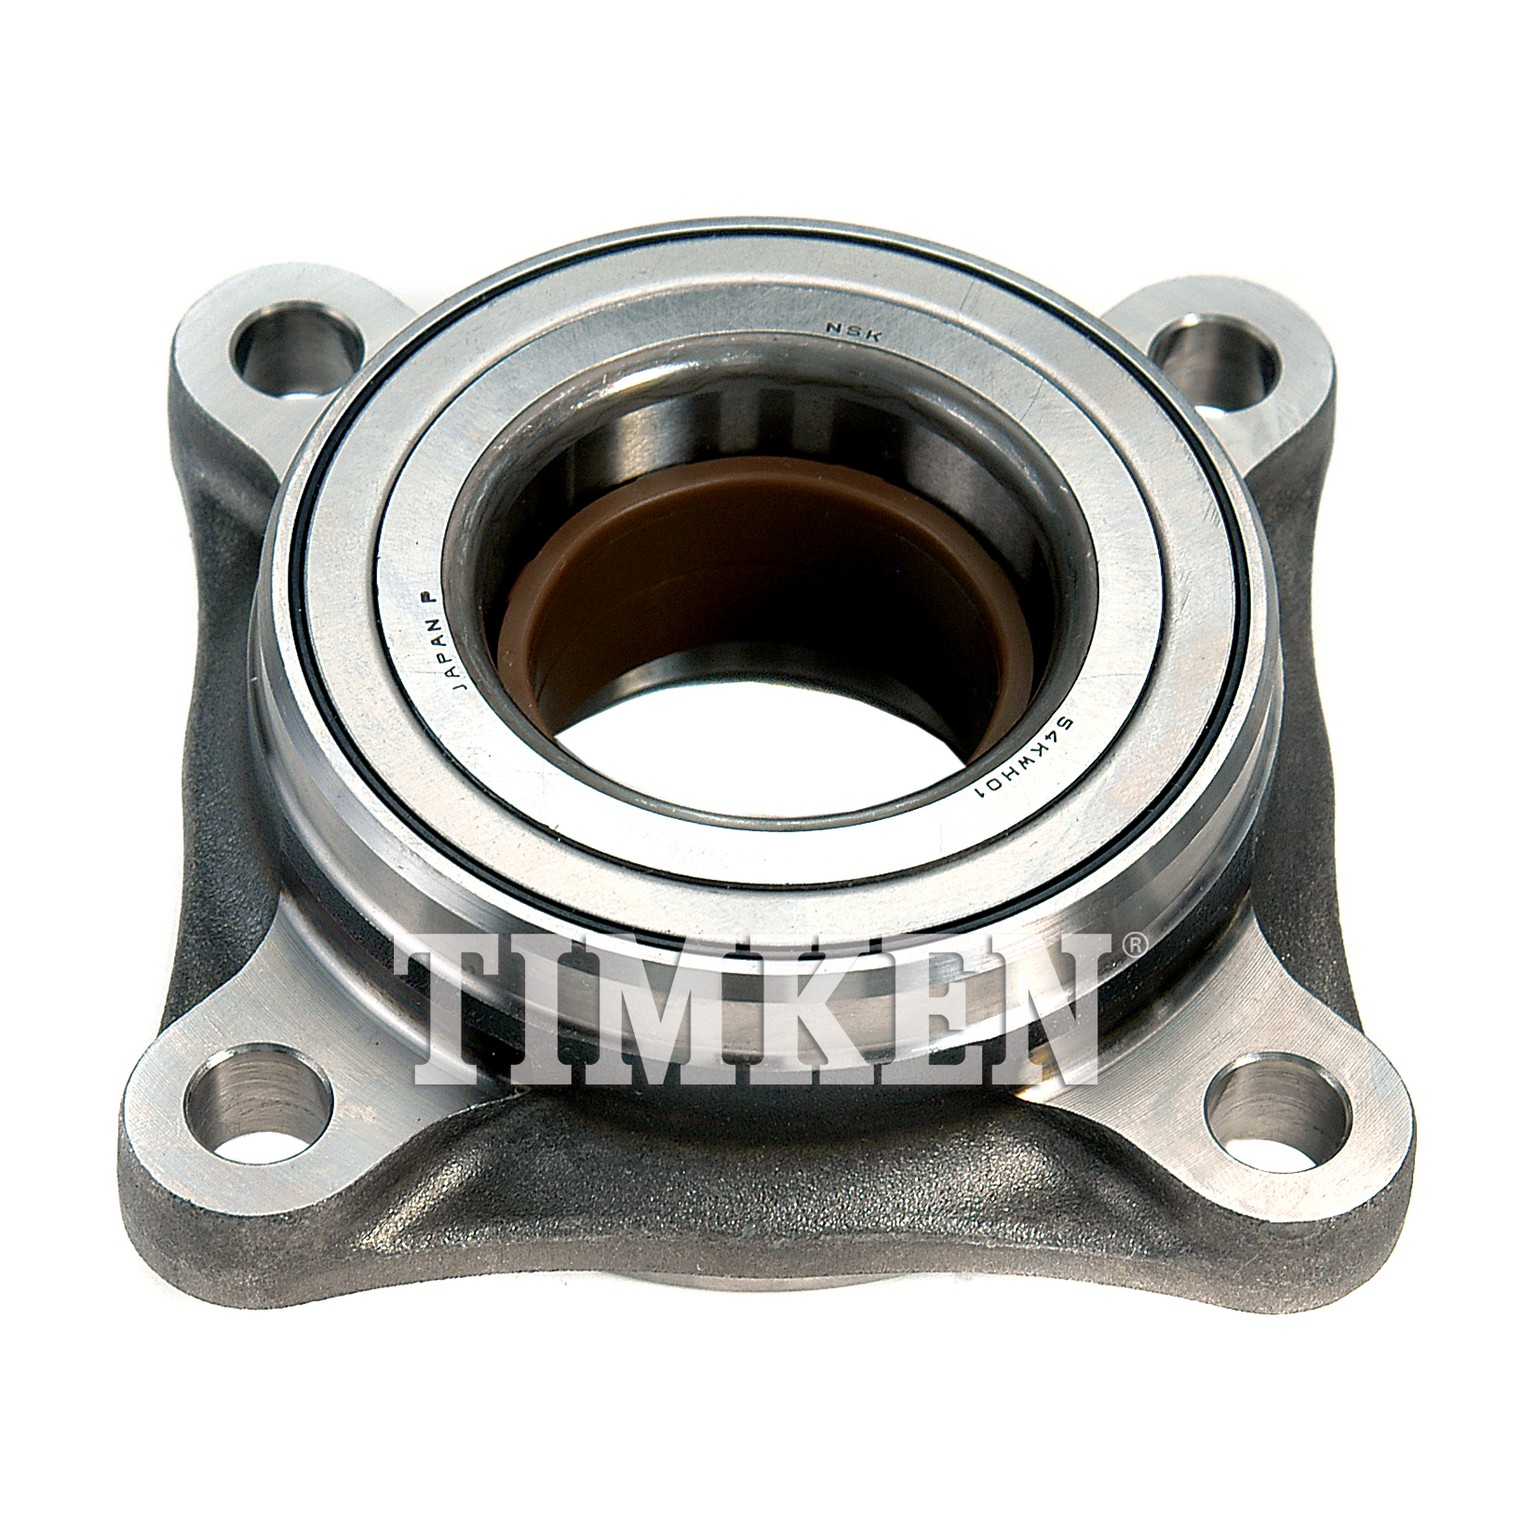 Note: 2.5 Liter L4 FWD 2011 fits Mazda 6 Front Wheel Bearing Left and Right Included with Two Years Warranty - Two Bearings